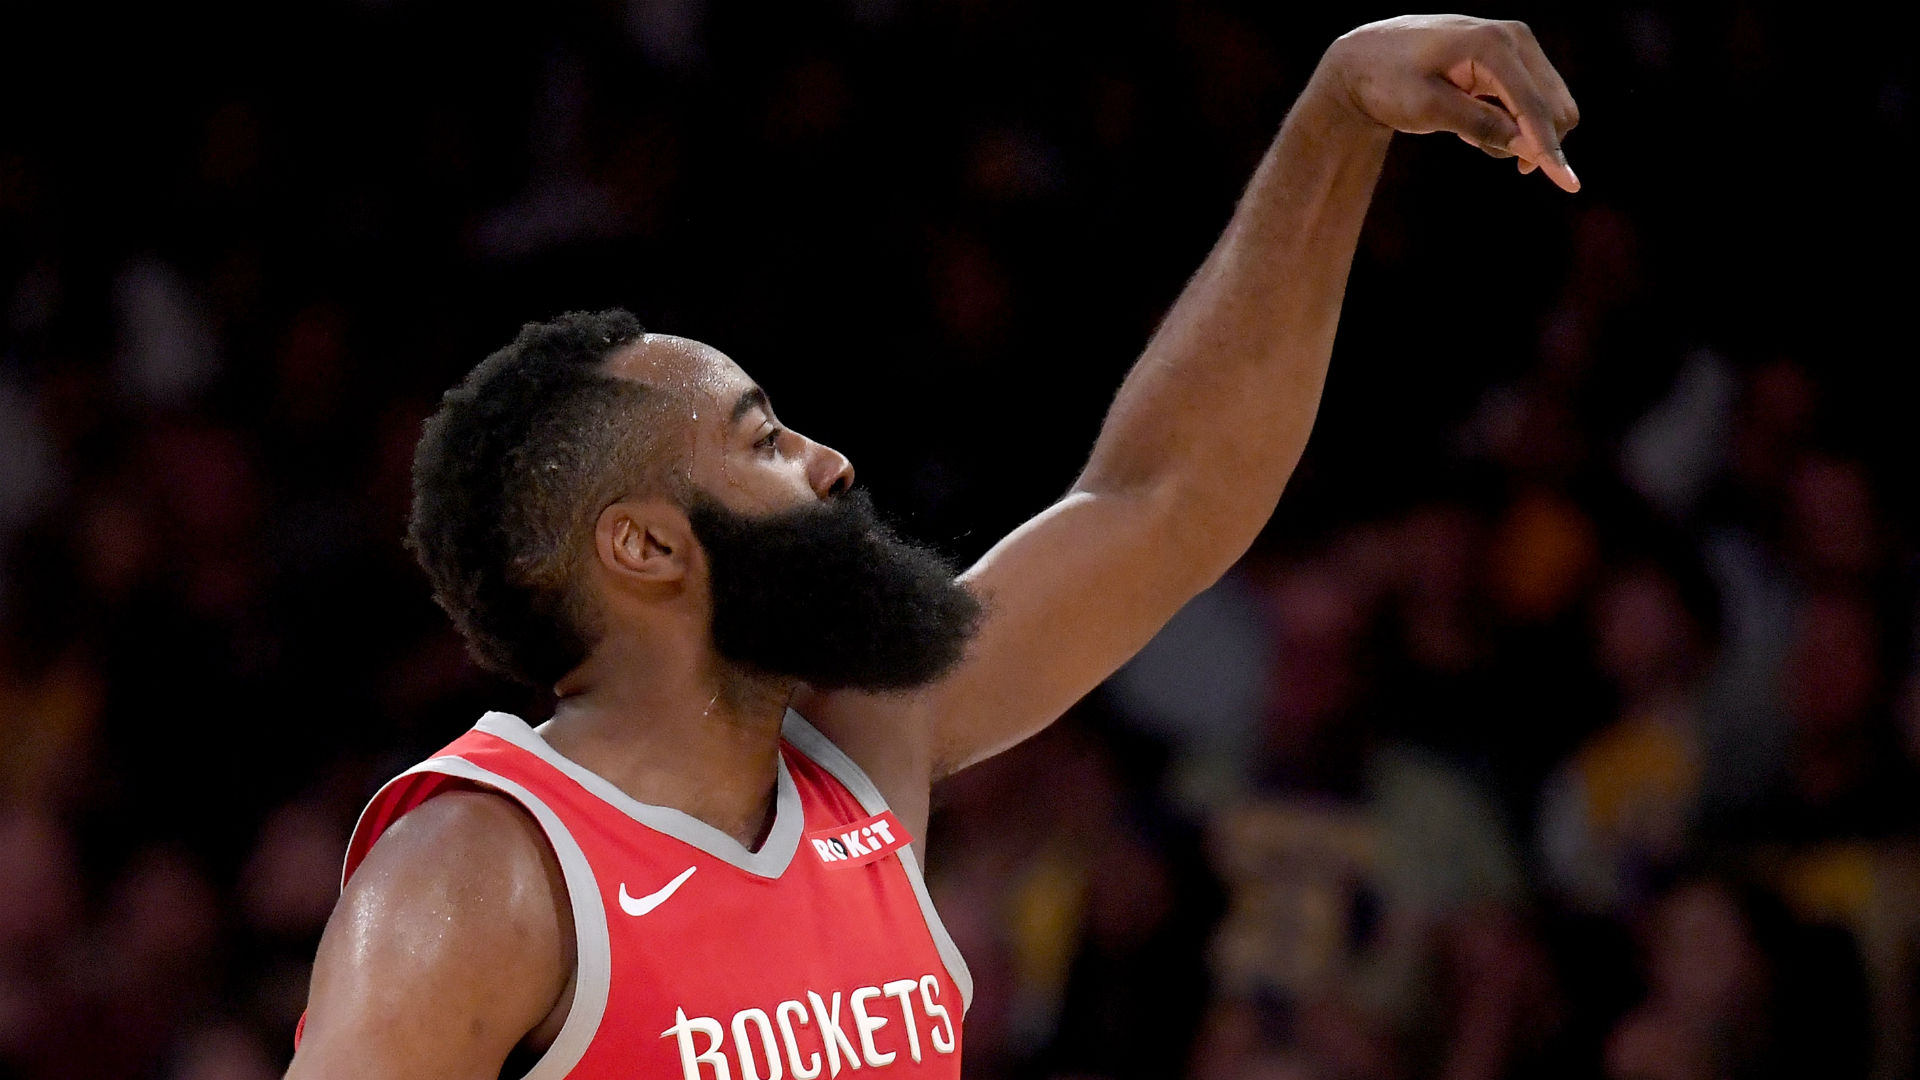 James Harden's season-high 57 points leads Rockets over Grizzlies